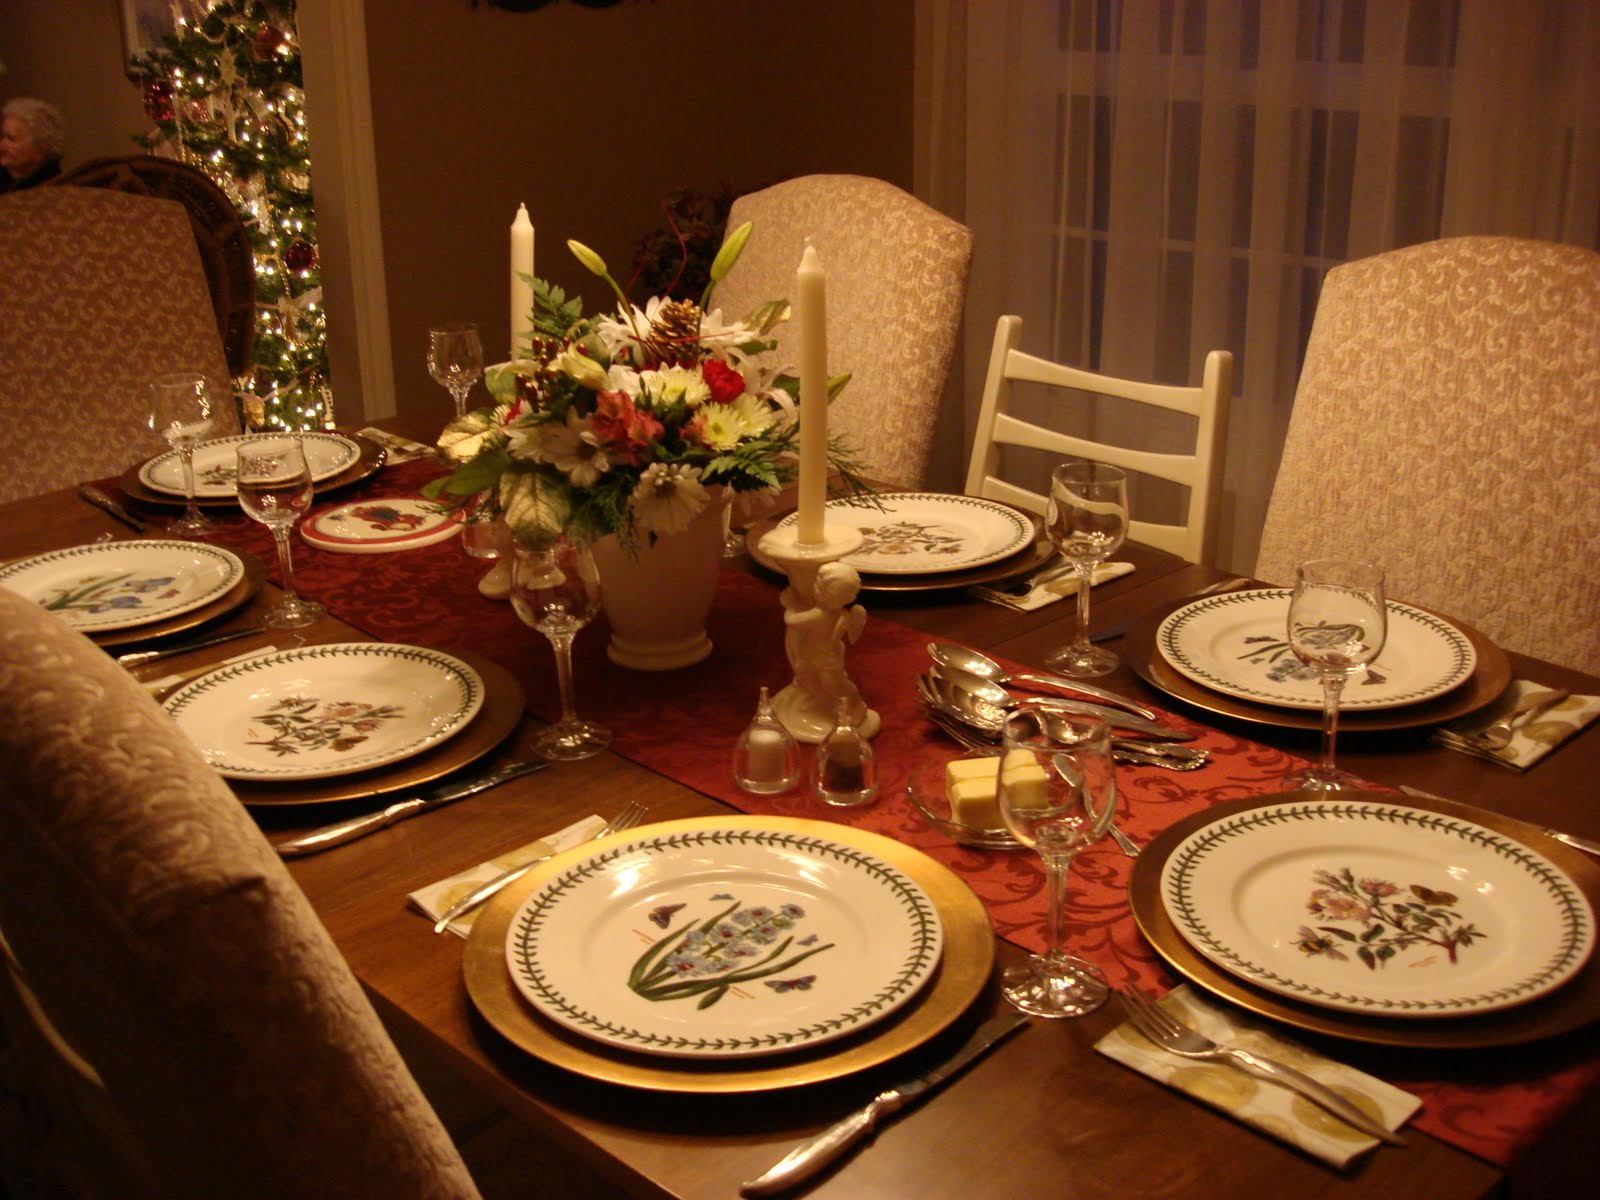 Dining table decorating ideas for Decor dining room table centerpiece